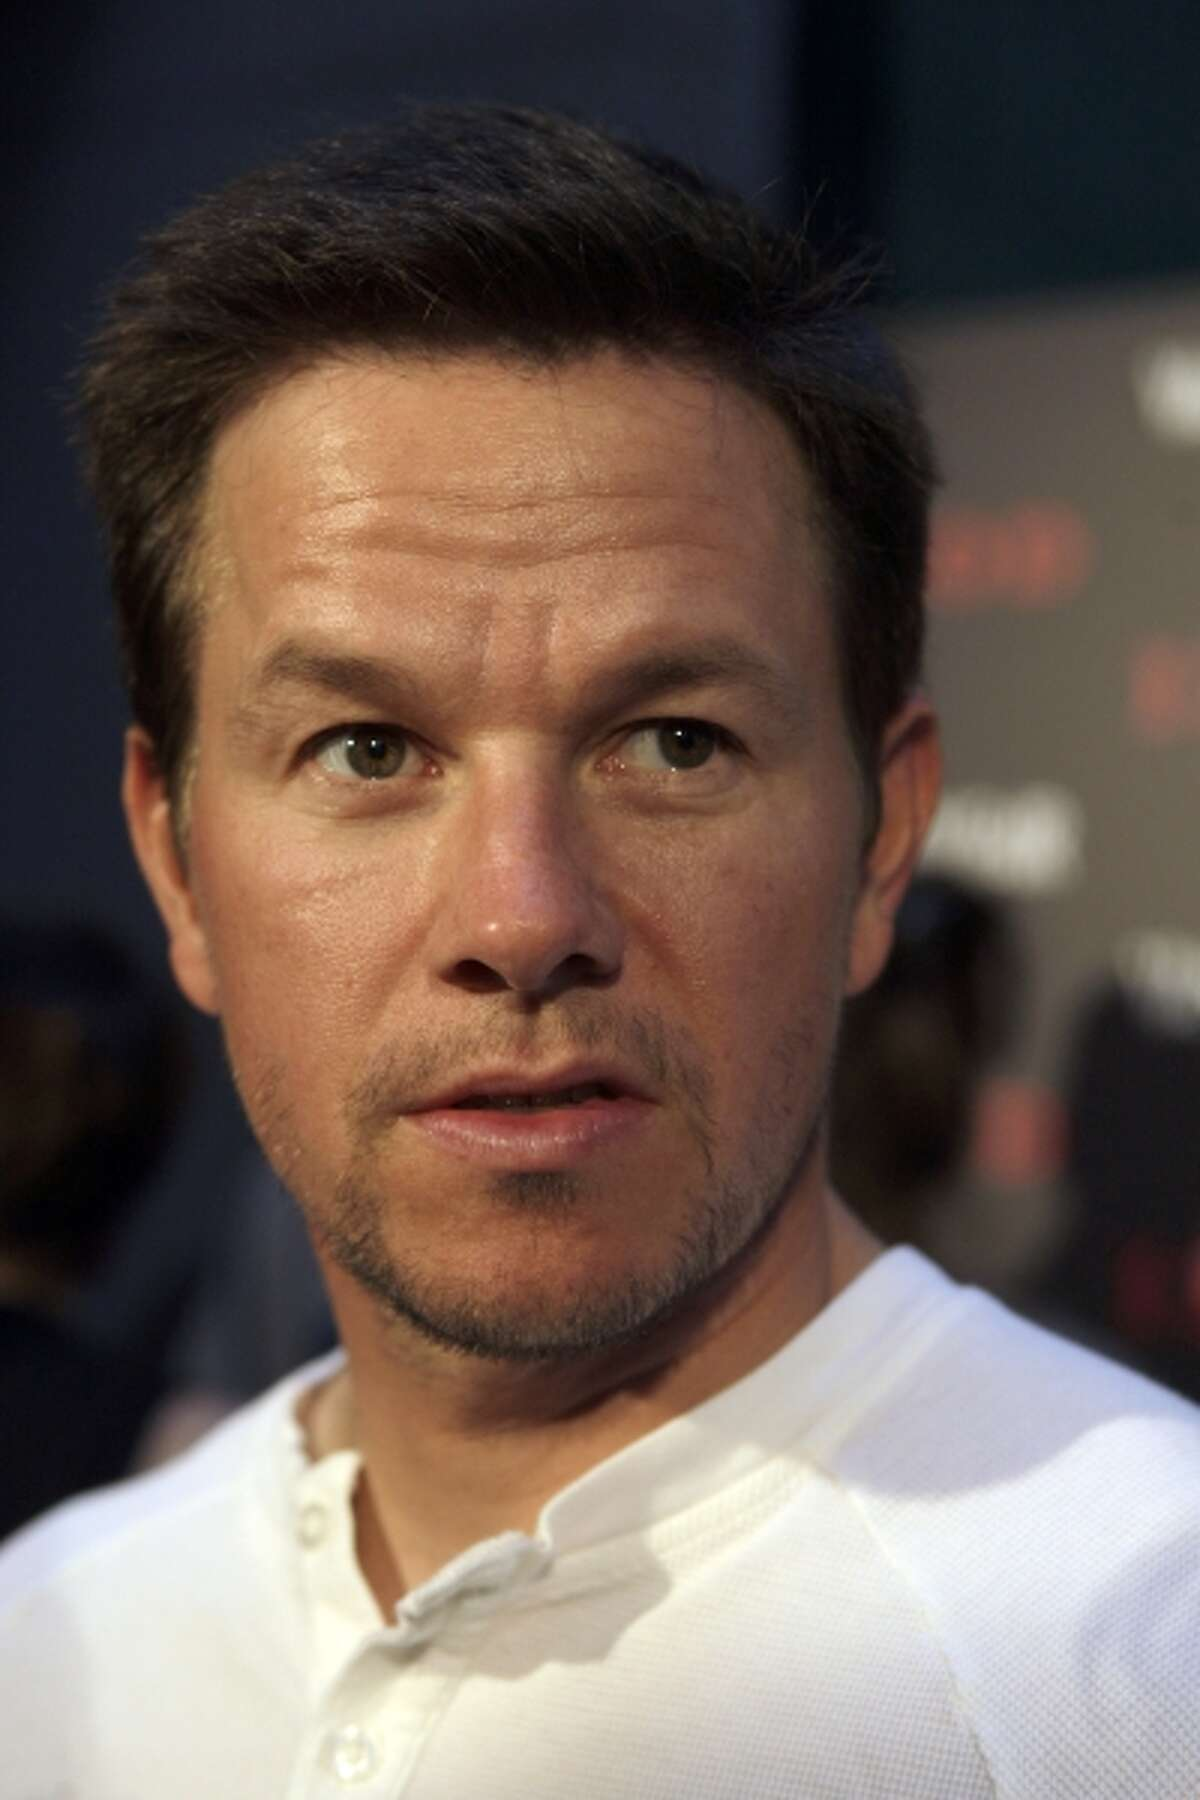 FILE - Actor Mark Wahlberg arrives for the IZOD Vanity Fair Party in this May 29, 2010 file photo taken in Indianapolis. Wahlberg is now a high school graduate _ 25 years after dropping out of a Boston high school. The 42-year-old actor-producer finished his diploma requirements after taking classes online. He dropped out of Copley Square High School, now known as Snowden International School at Copley, in the 9th grade. (AP Photo/Jeff Roberson)